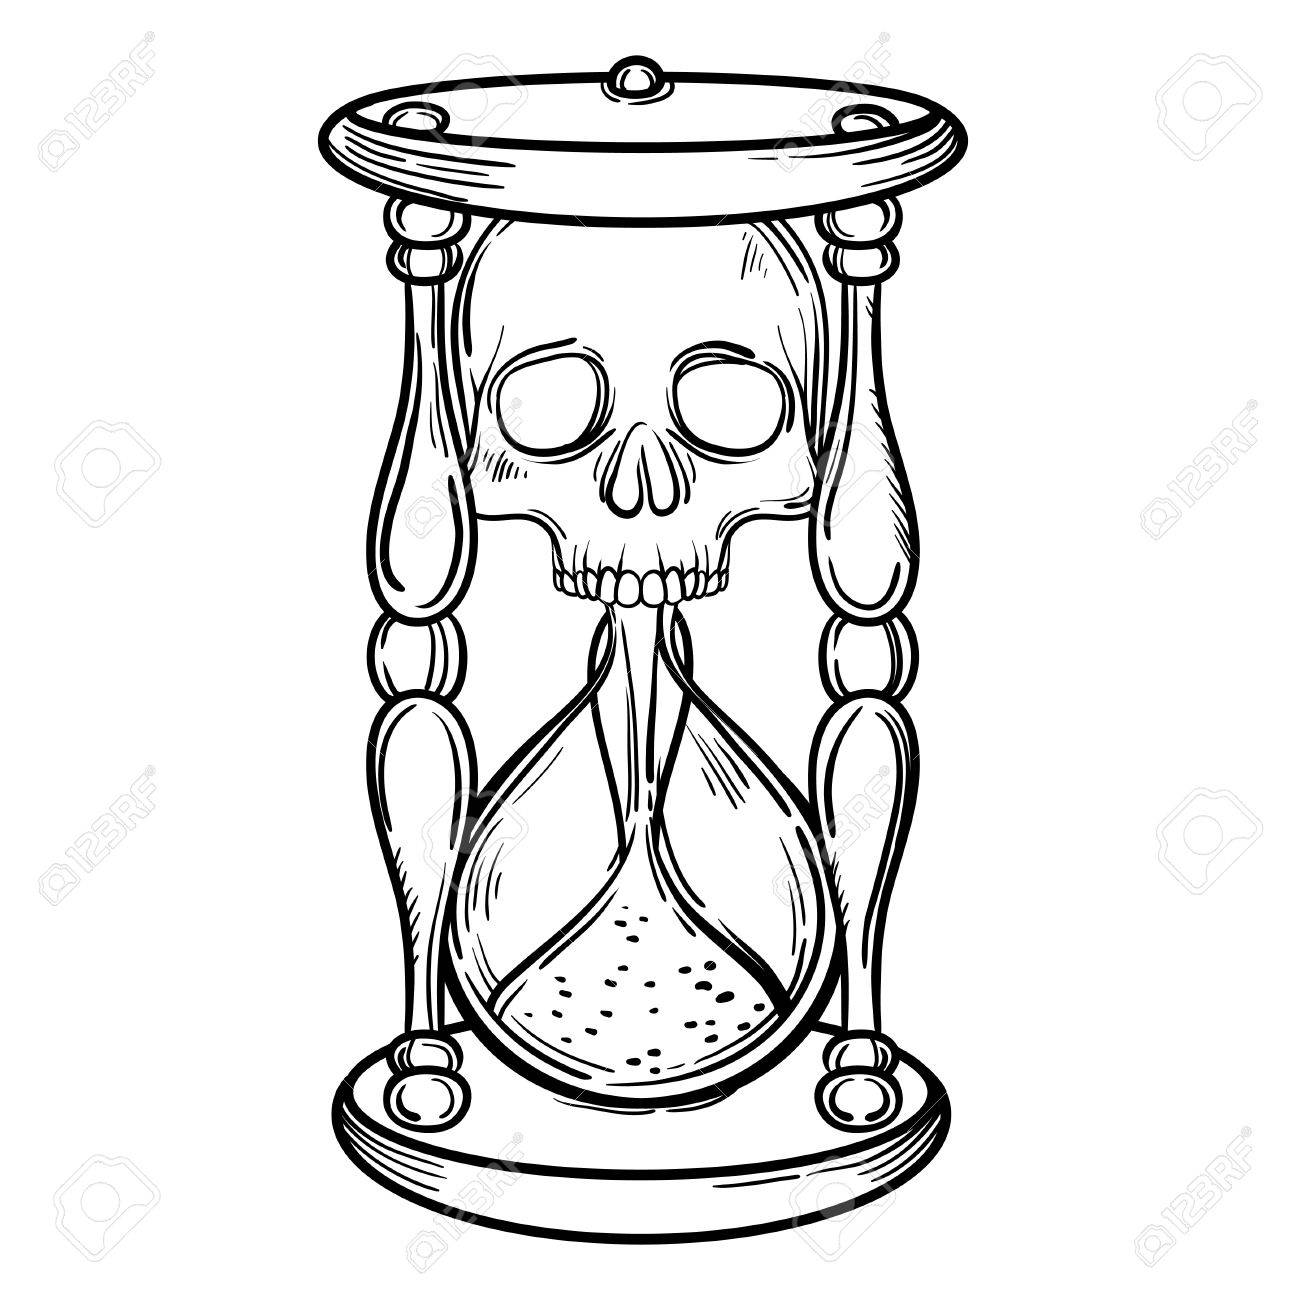 Hourglass Drawing At GetDrawings